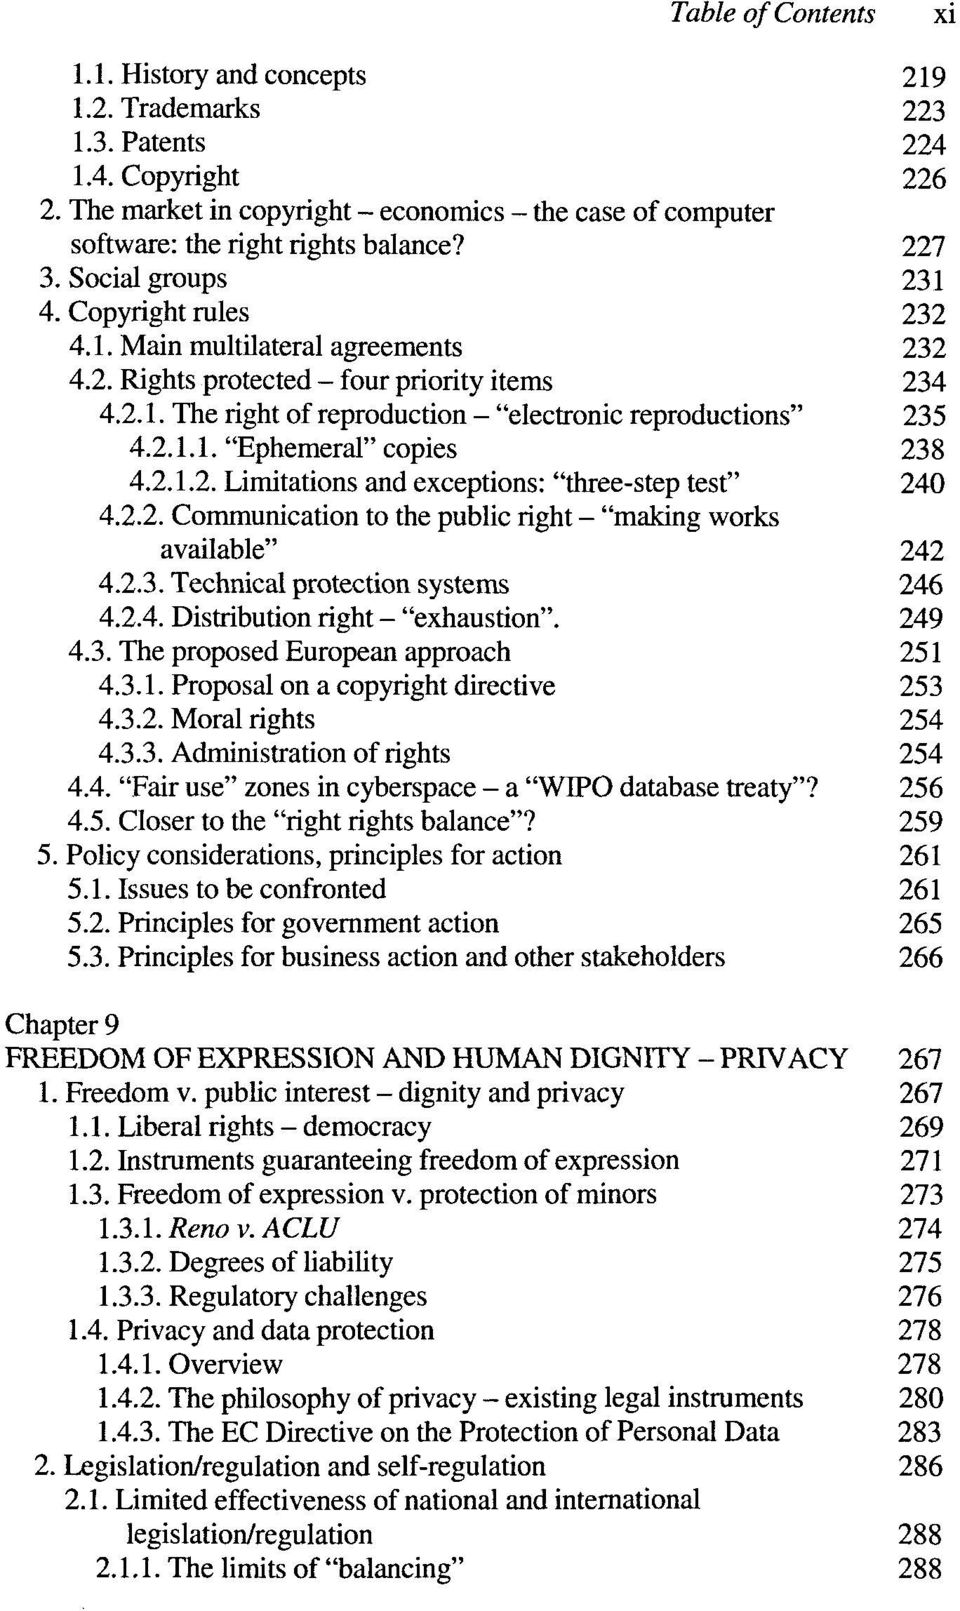 "2.1. The right of reproduction - ""electronic reproductions"" 235 4.2.1.1. ""Ephemeral"" copies 238 4.2.1.2. Limitations and exceptions: ""three-step test"" 240 4.2.2. Communication to the public right - ""making works available"" 242 4."